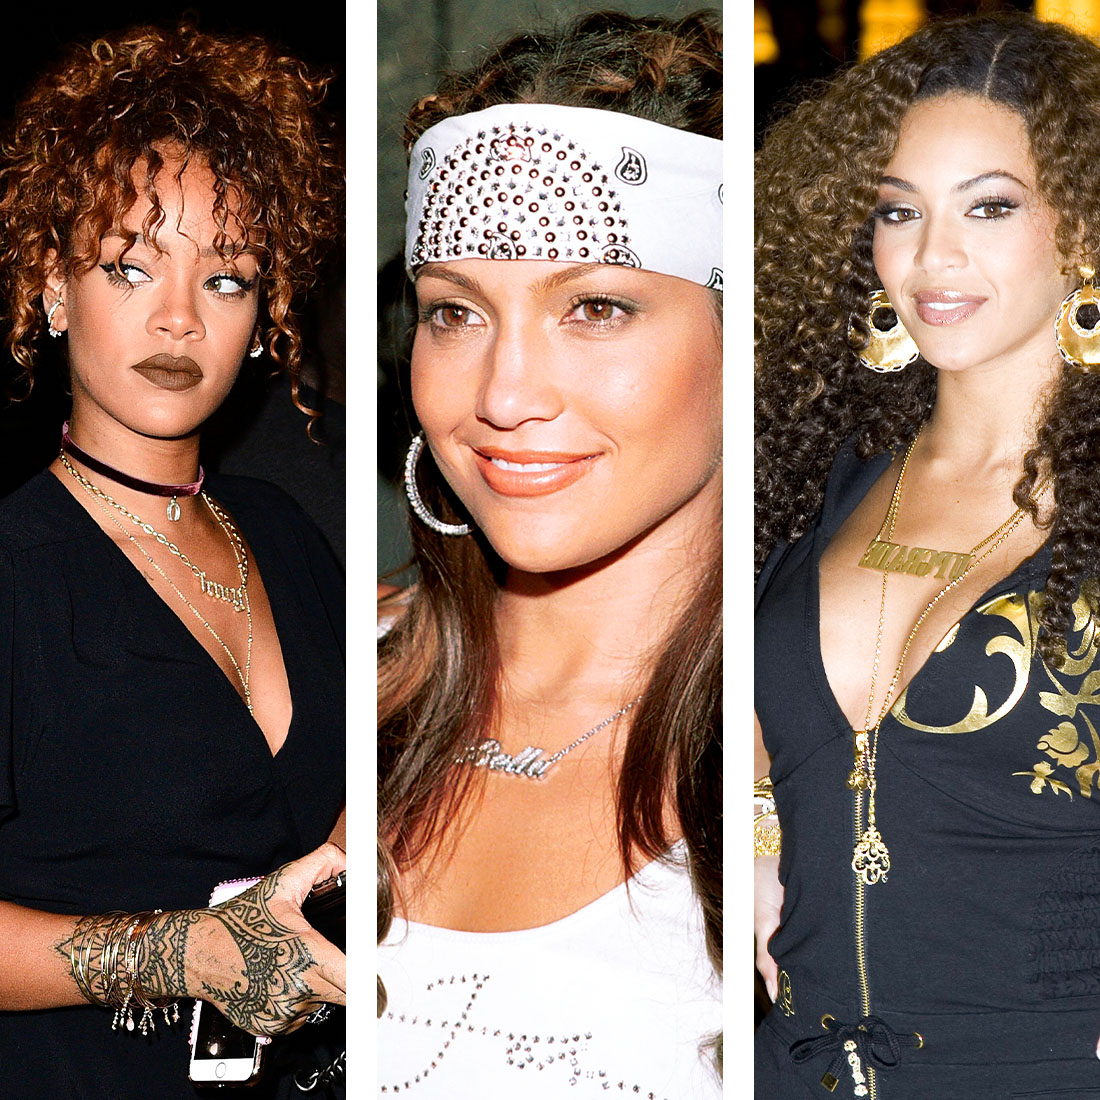 nameplate-necklaces-have-a-history-beyond-carrie-bradshaw-and-mainstream-fashion